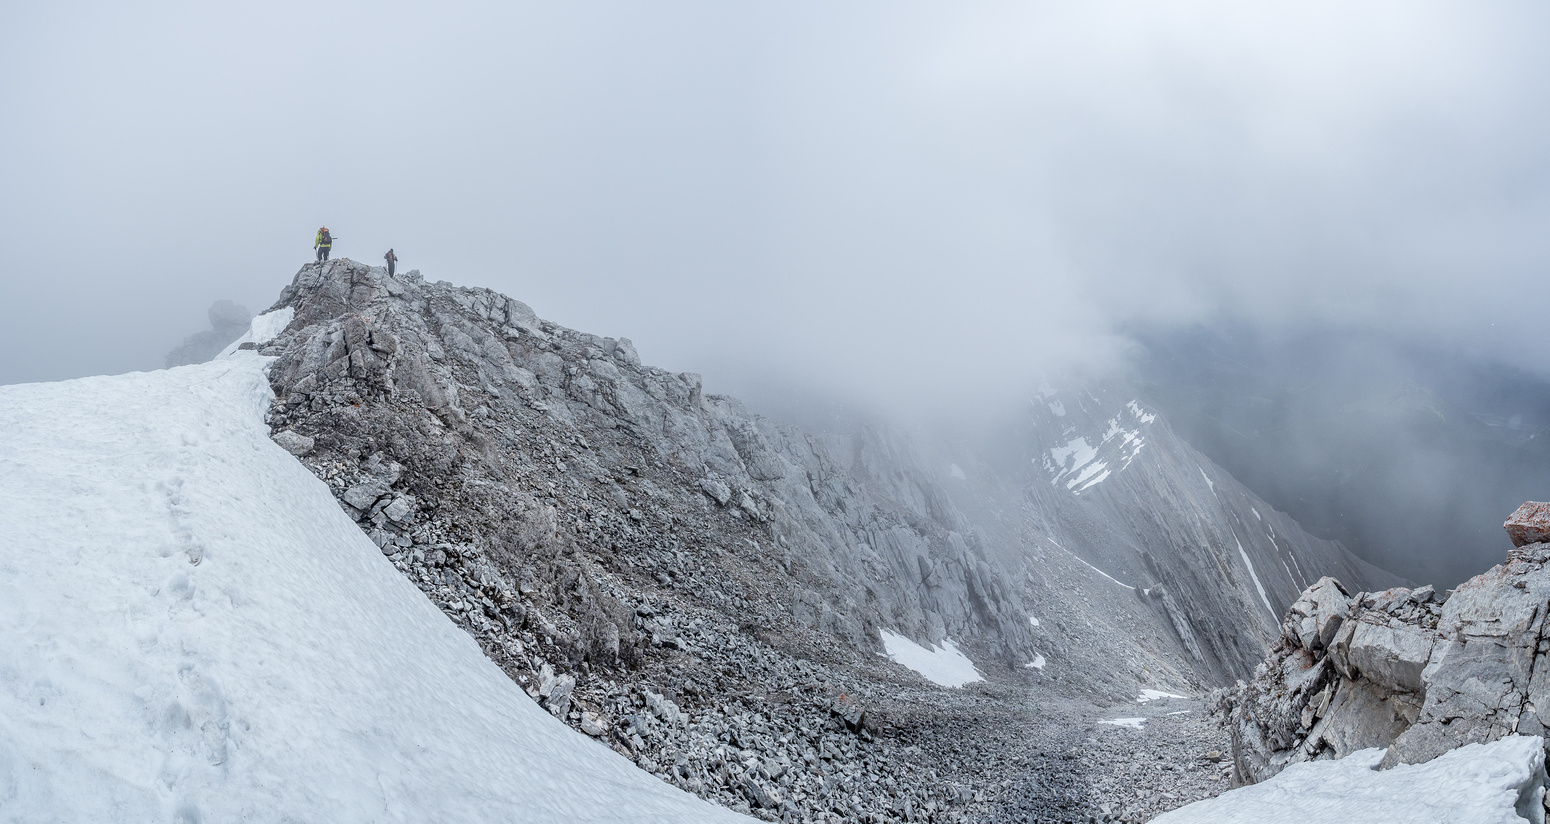 Leaving the top in swirling clouds and light snow.